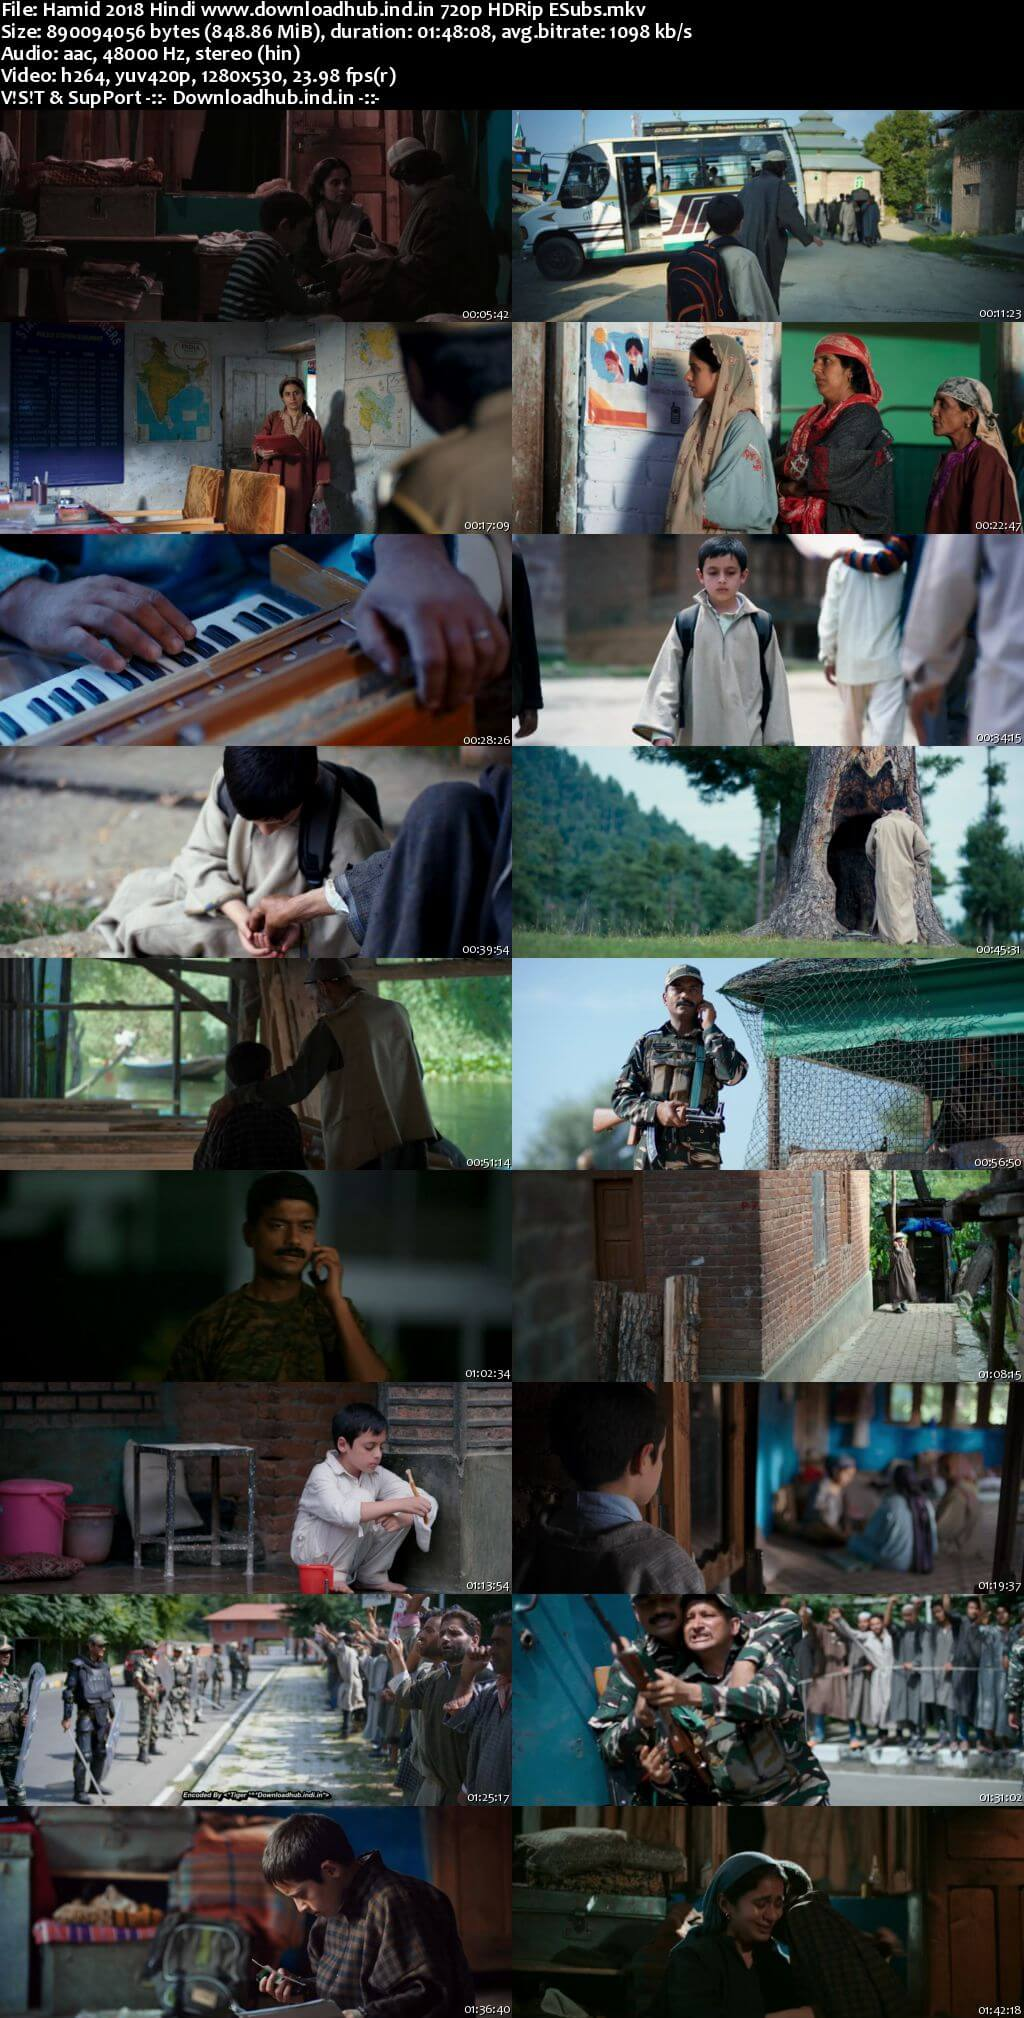 Hamid 2018 Hindi 720p HDRip ESubs